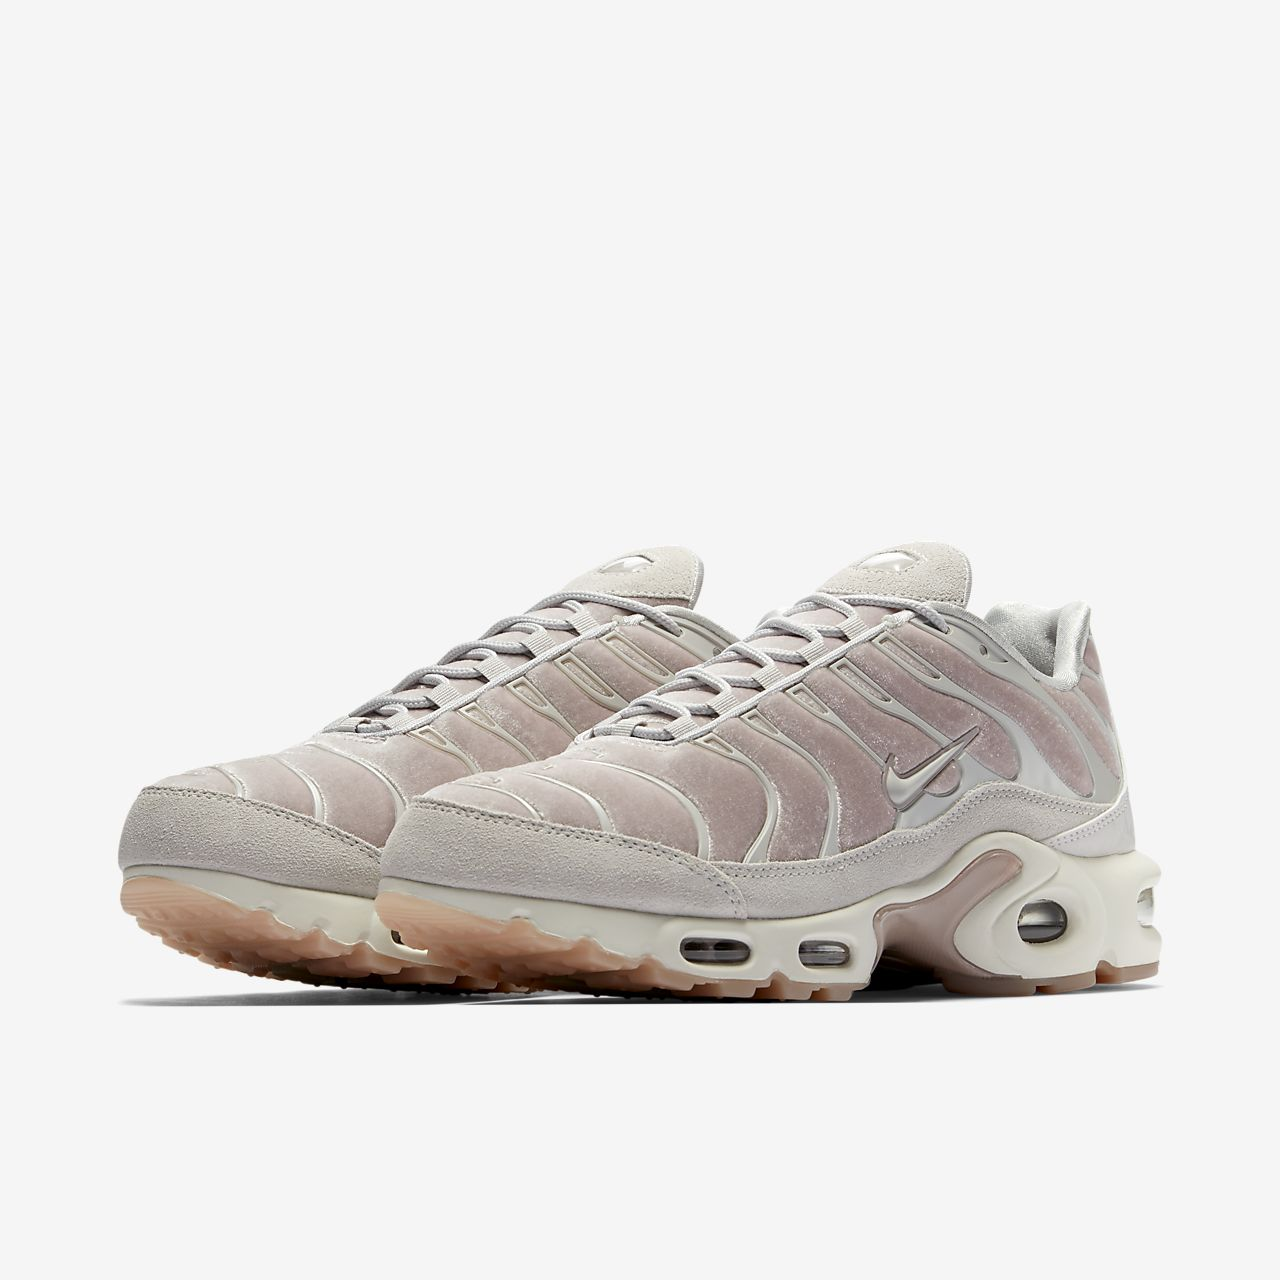 2nike air max plus tn donna